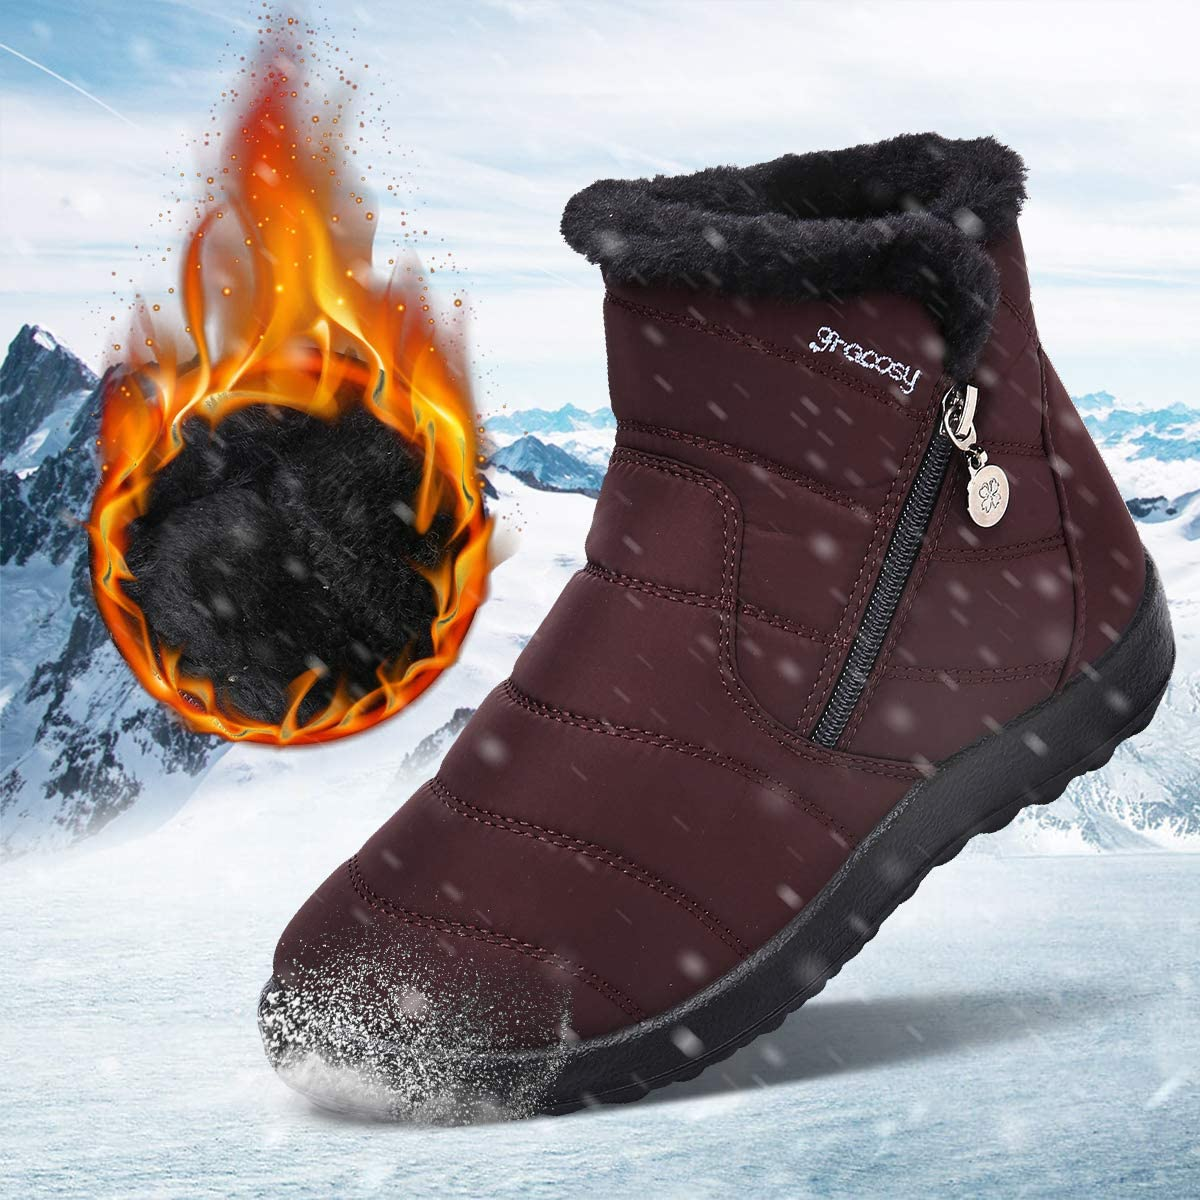 gracosy Women Snow Boots Winter Fur Lined Warm Ankle Boots Slip On Anti Slip Waterproof Short Boots Black